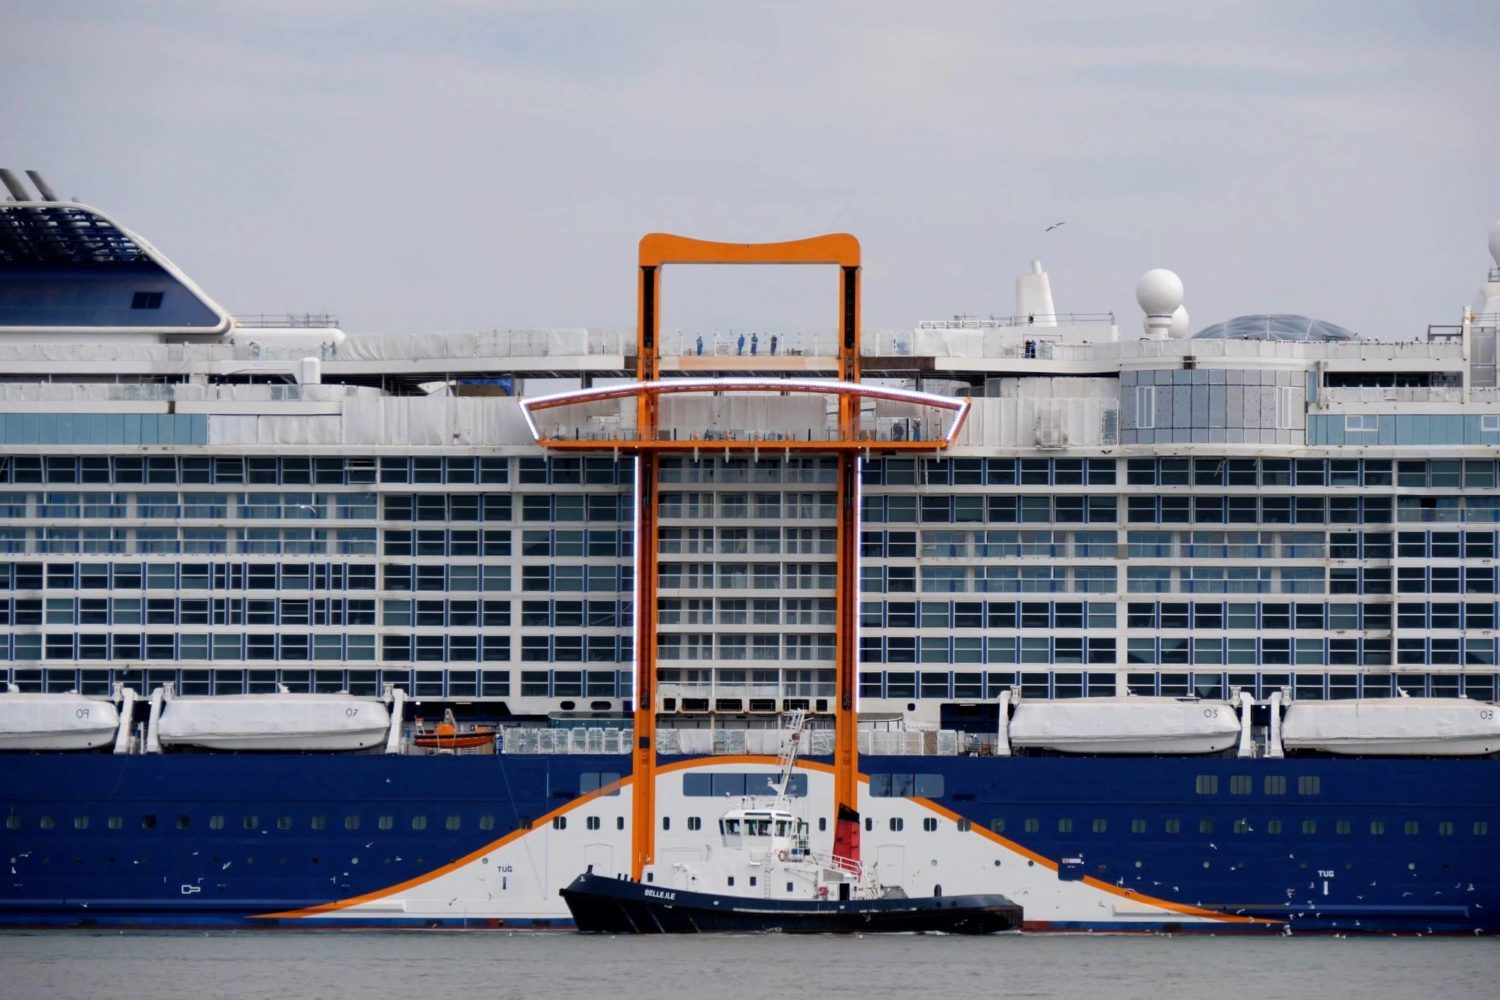 Celebrity Cruises New Cruise Ship Begins Sea Trials